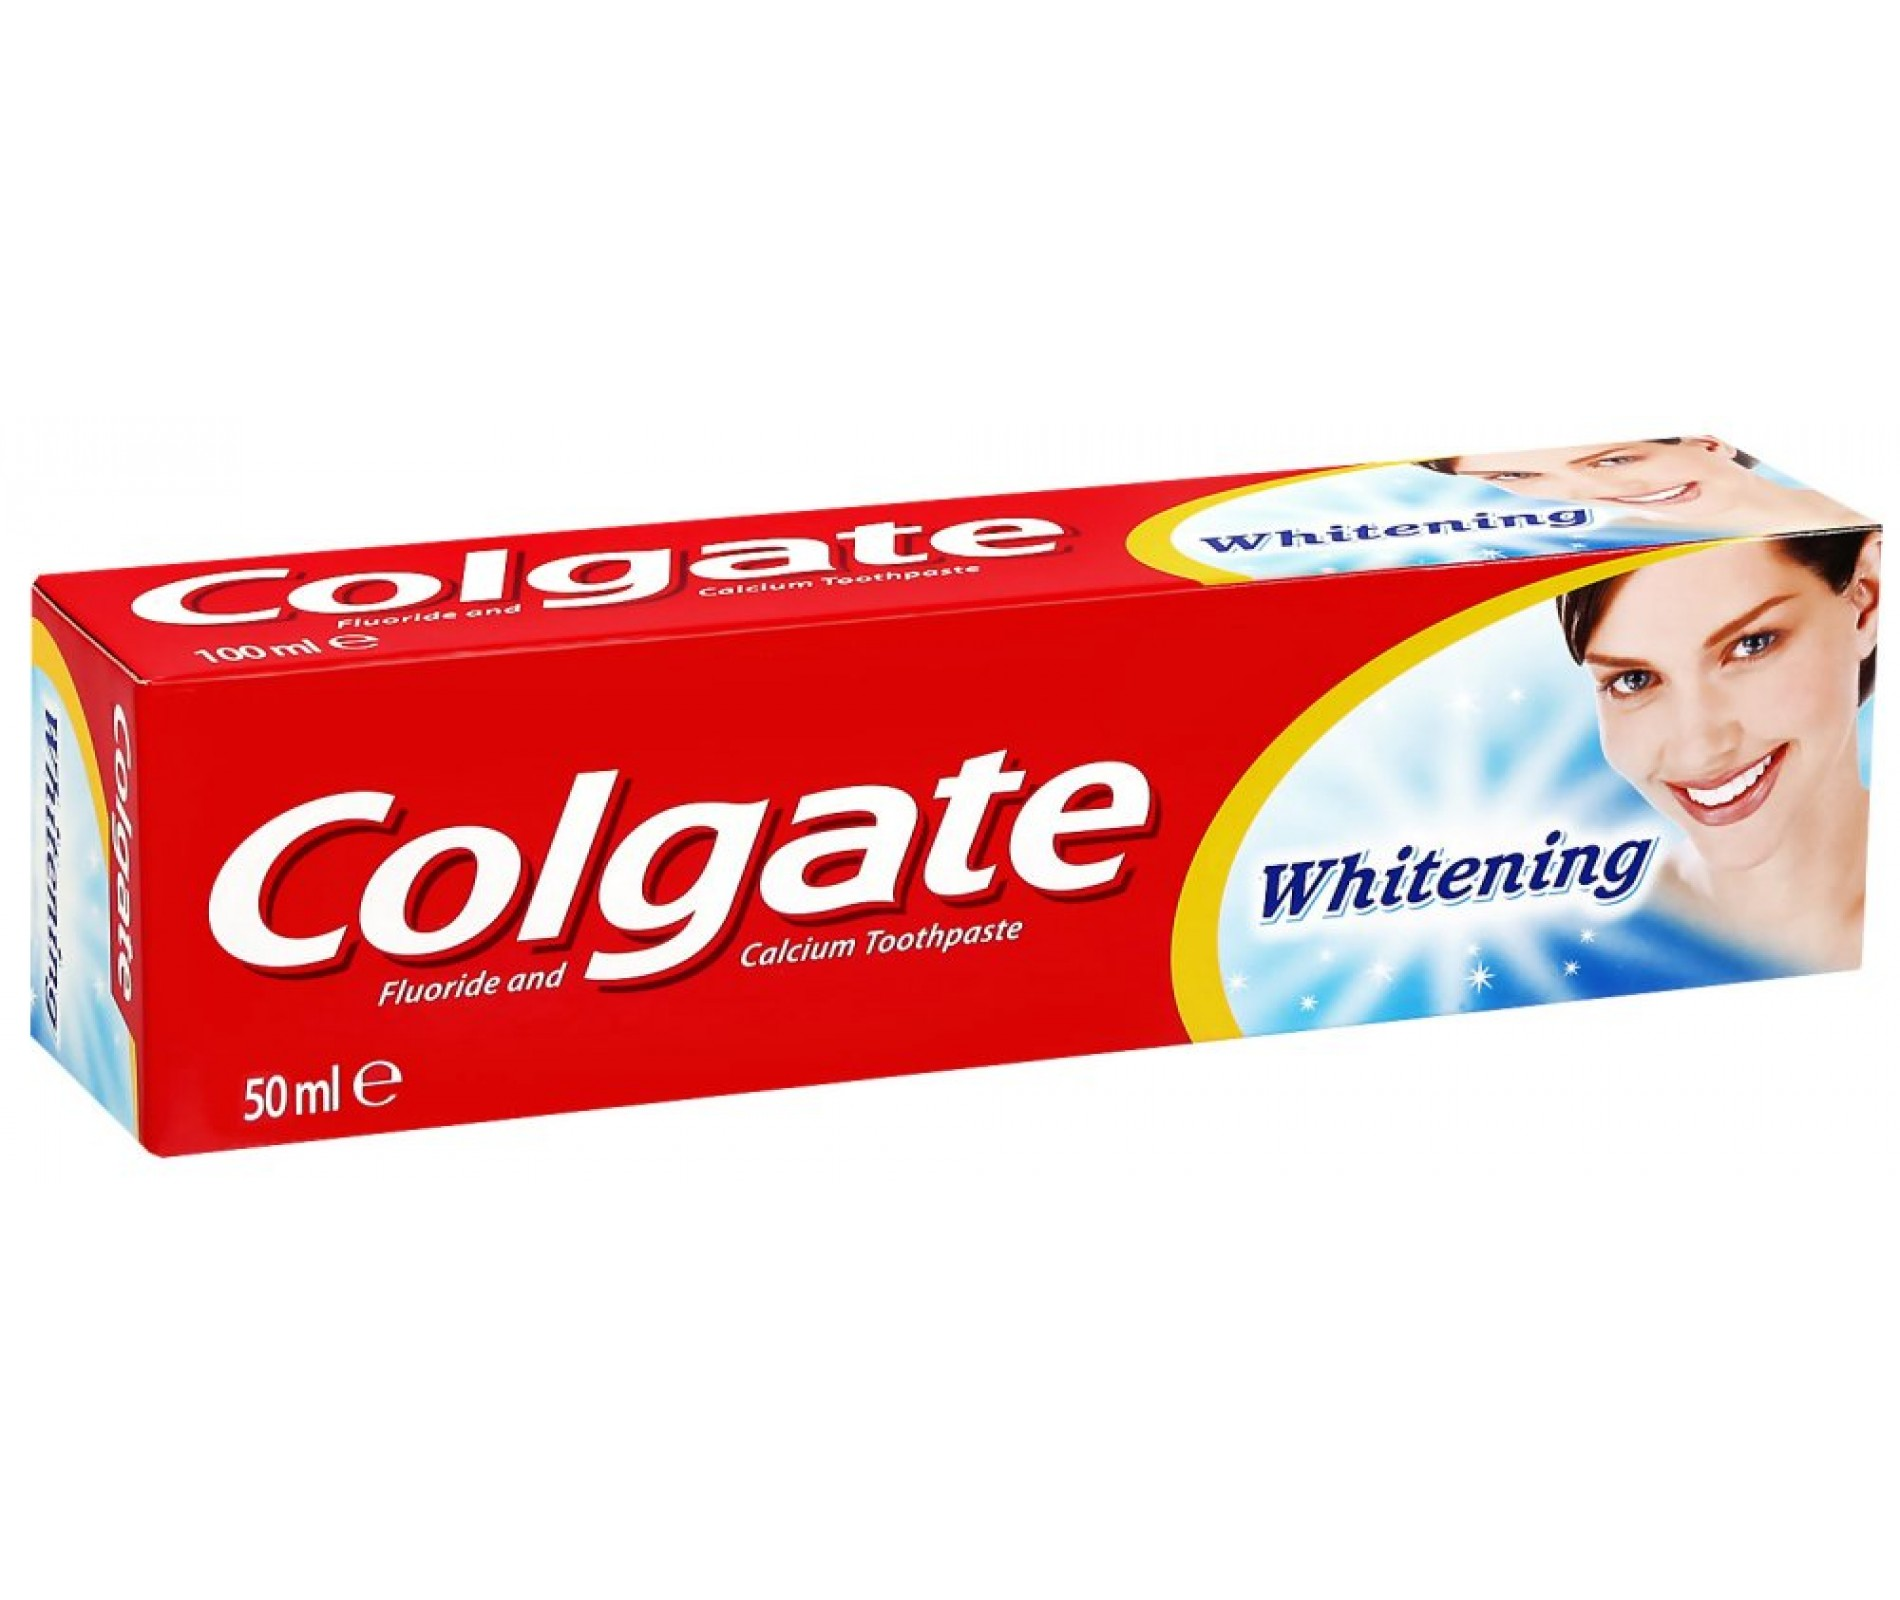 Colgate Whitening 50 ml.